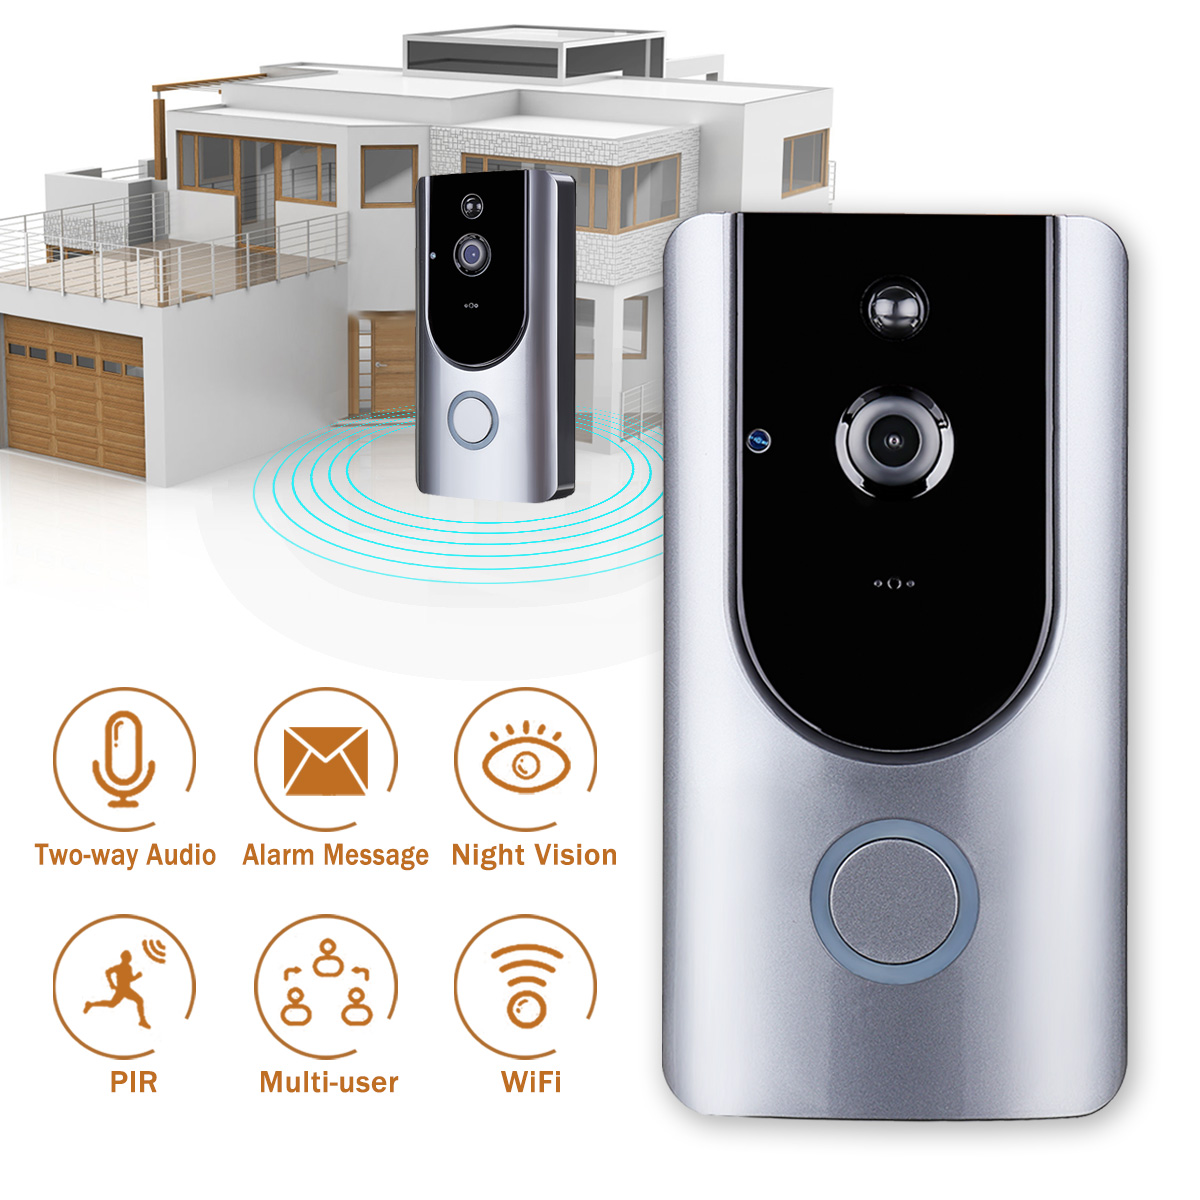 1Set Wireless Video Door Phone HD PIR WIFI Doorbell Intercom Alarm Wireless Security Camera Outdoor Doorbell barr amelia e all the days of my life an autobiography page 5 page 10 page 8